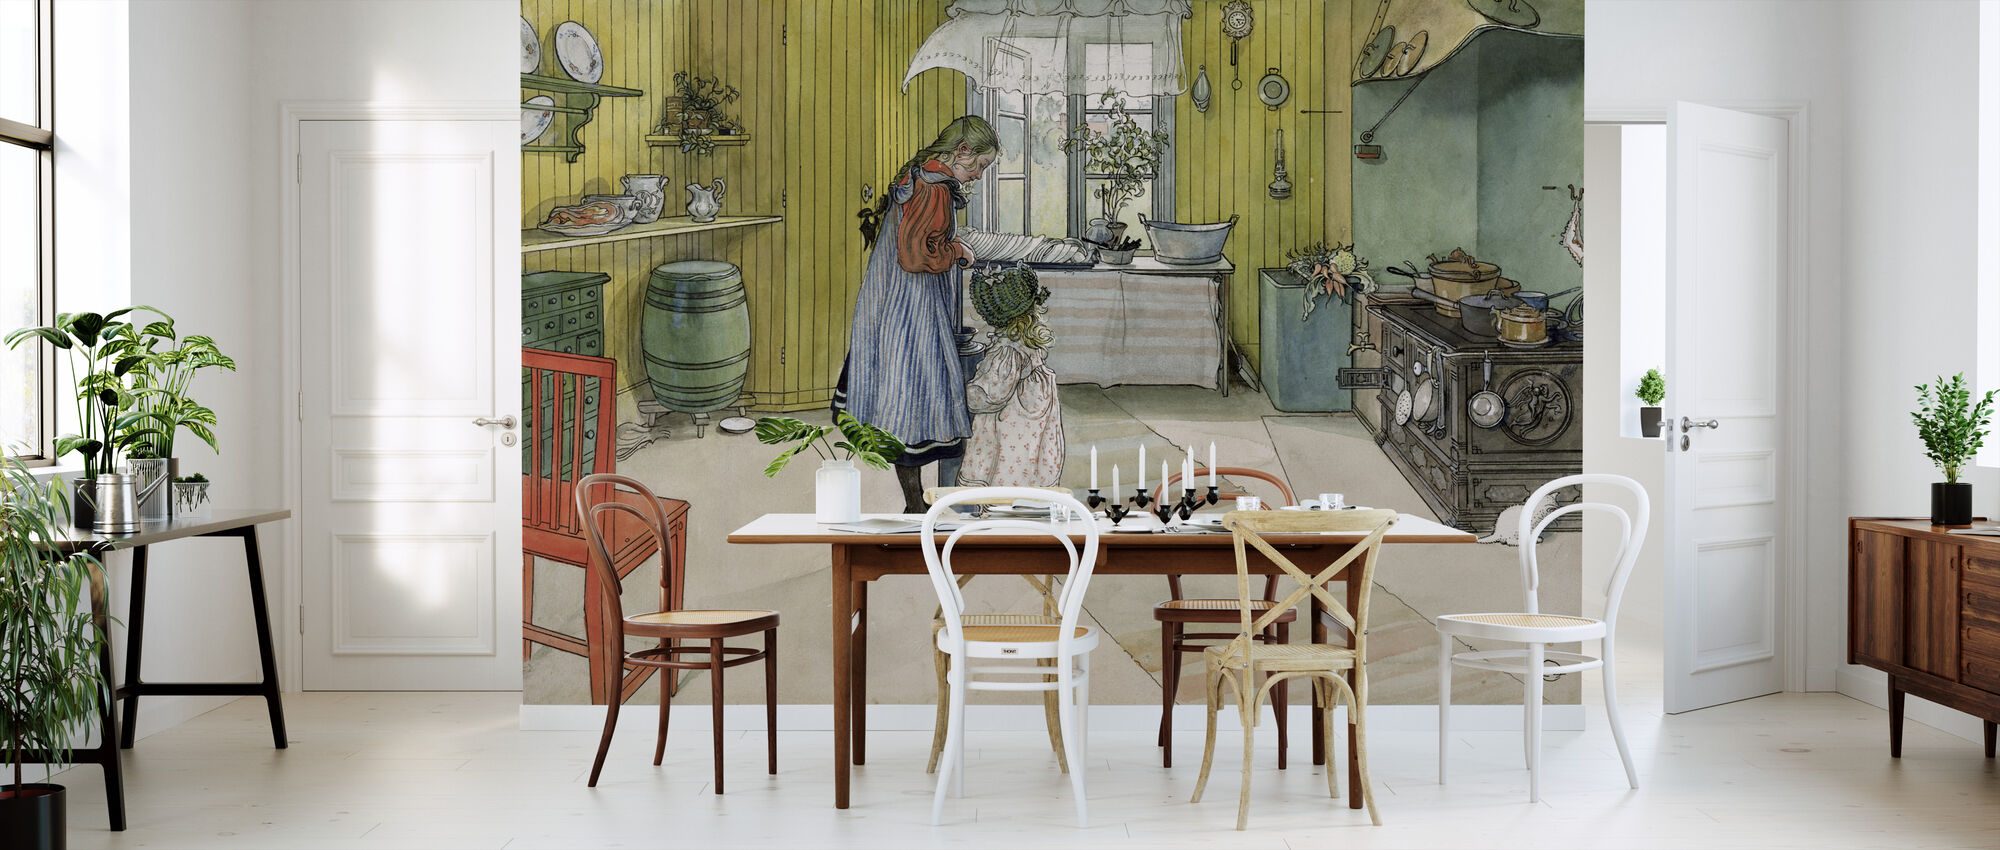 From a Home - Carl Larsson - Wallpaper - Kitchen